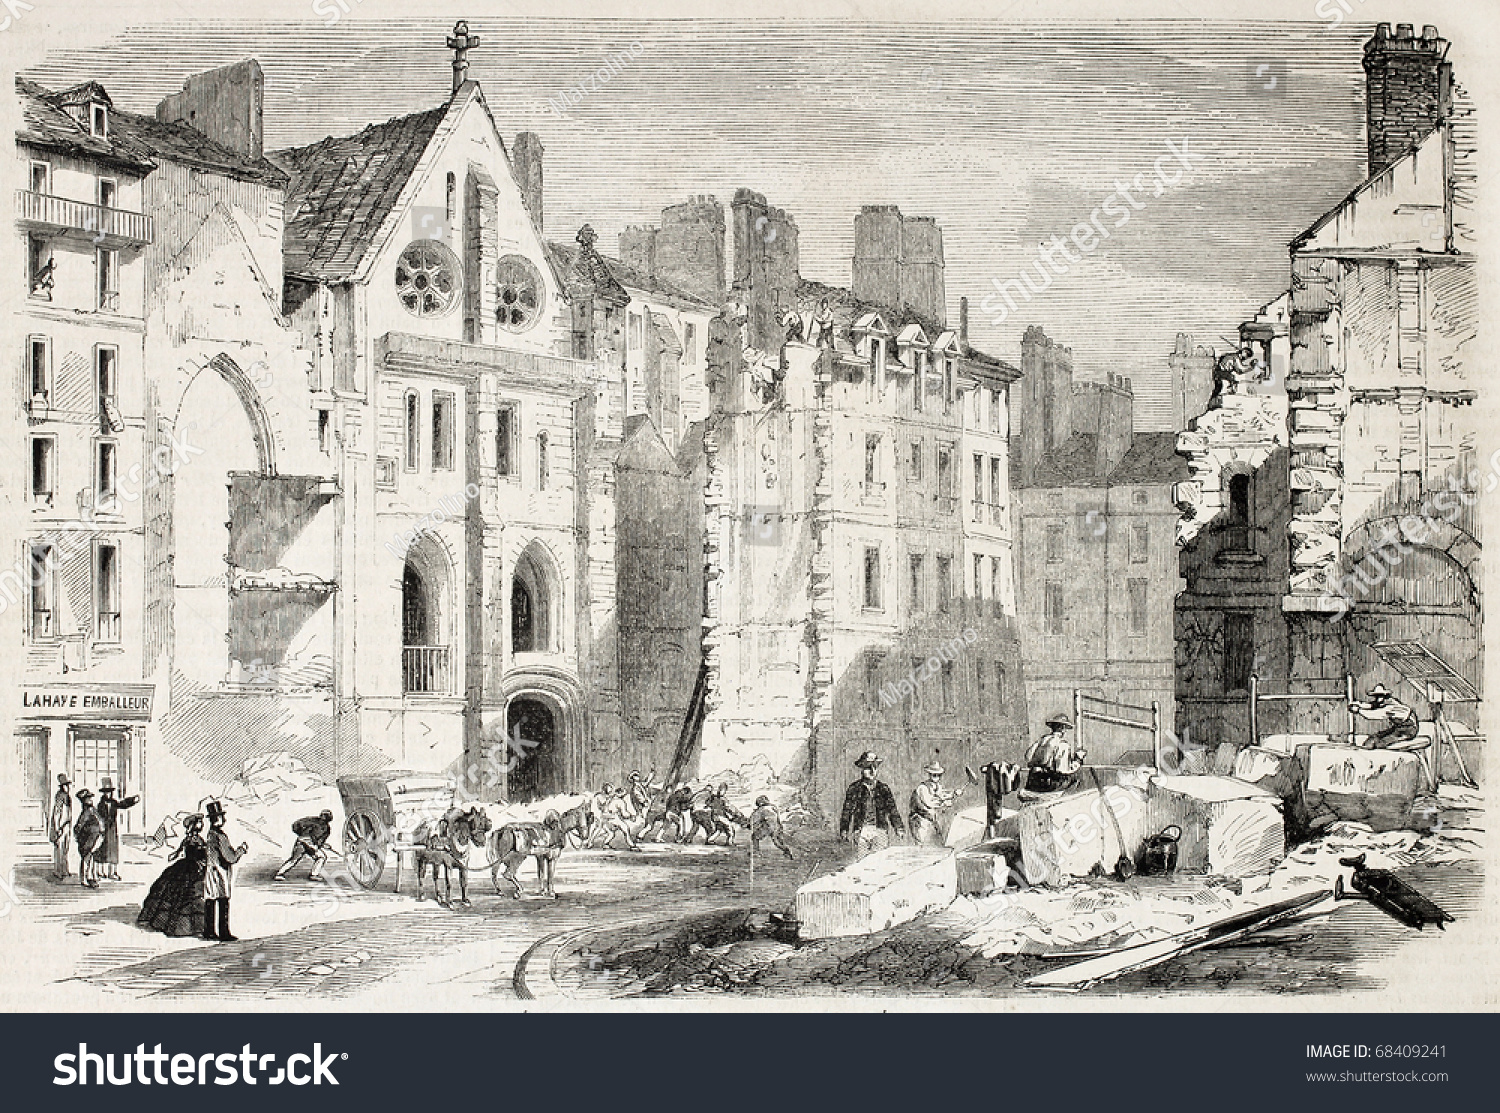 Building Demolition Drawing : Old illustration demolition ancient cluny college stock